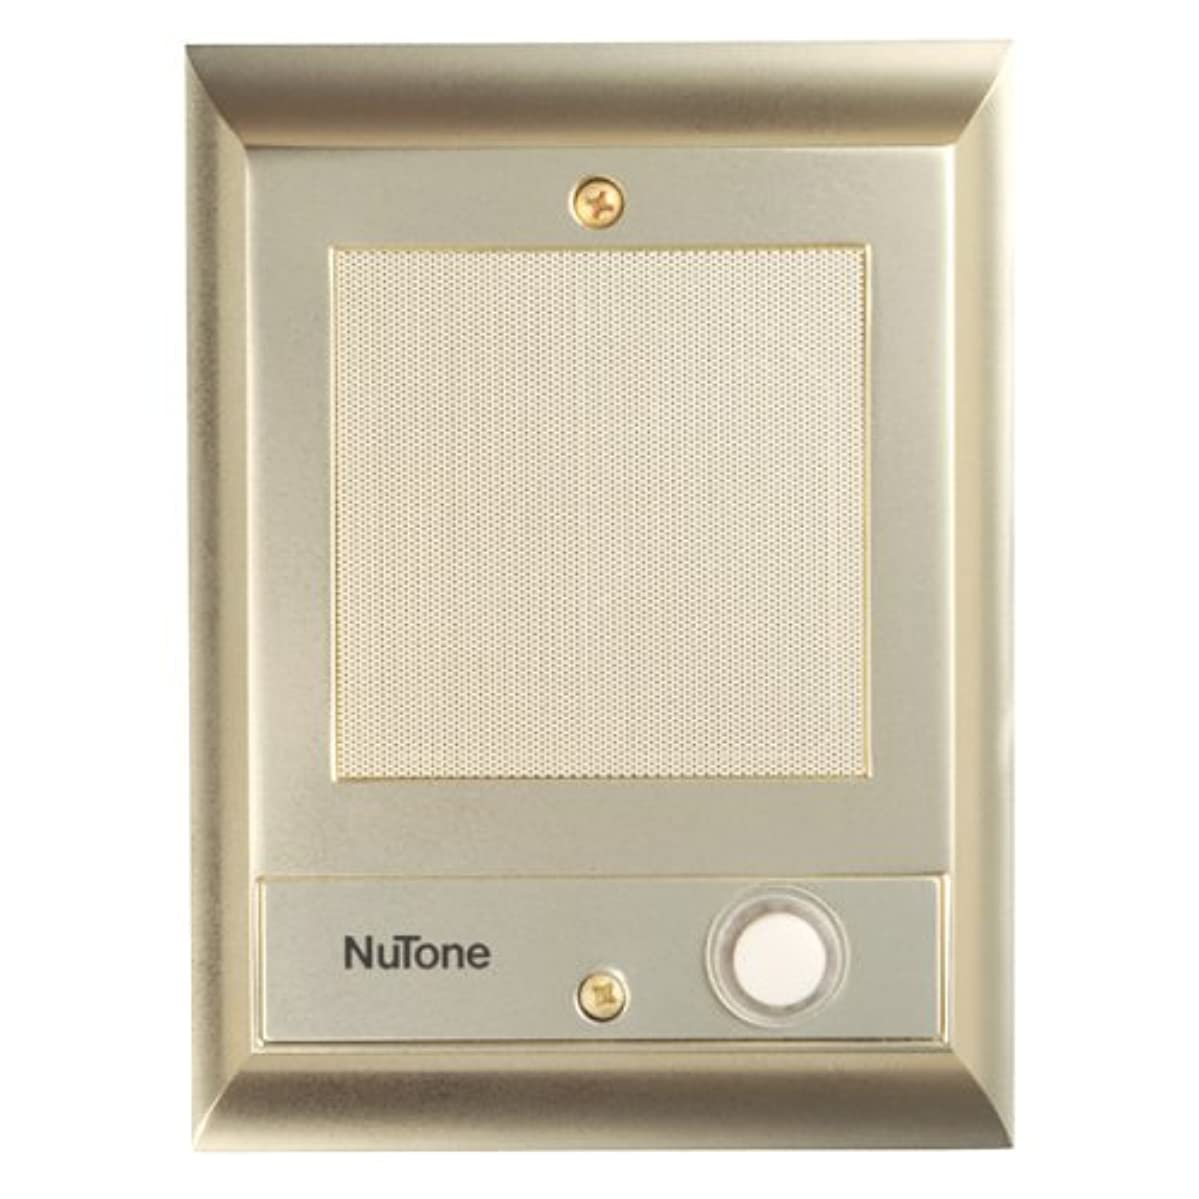 Nutone IS69PB Door Speaker with Lighted Pushbutton (Discontinued by Manufacturer)